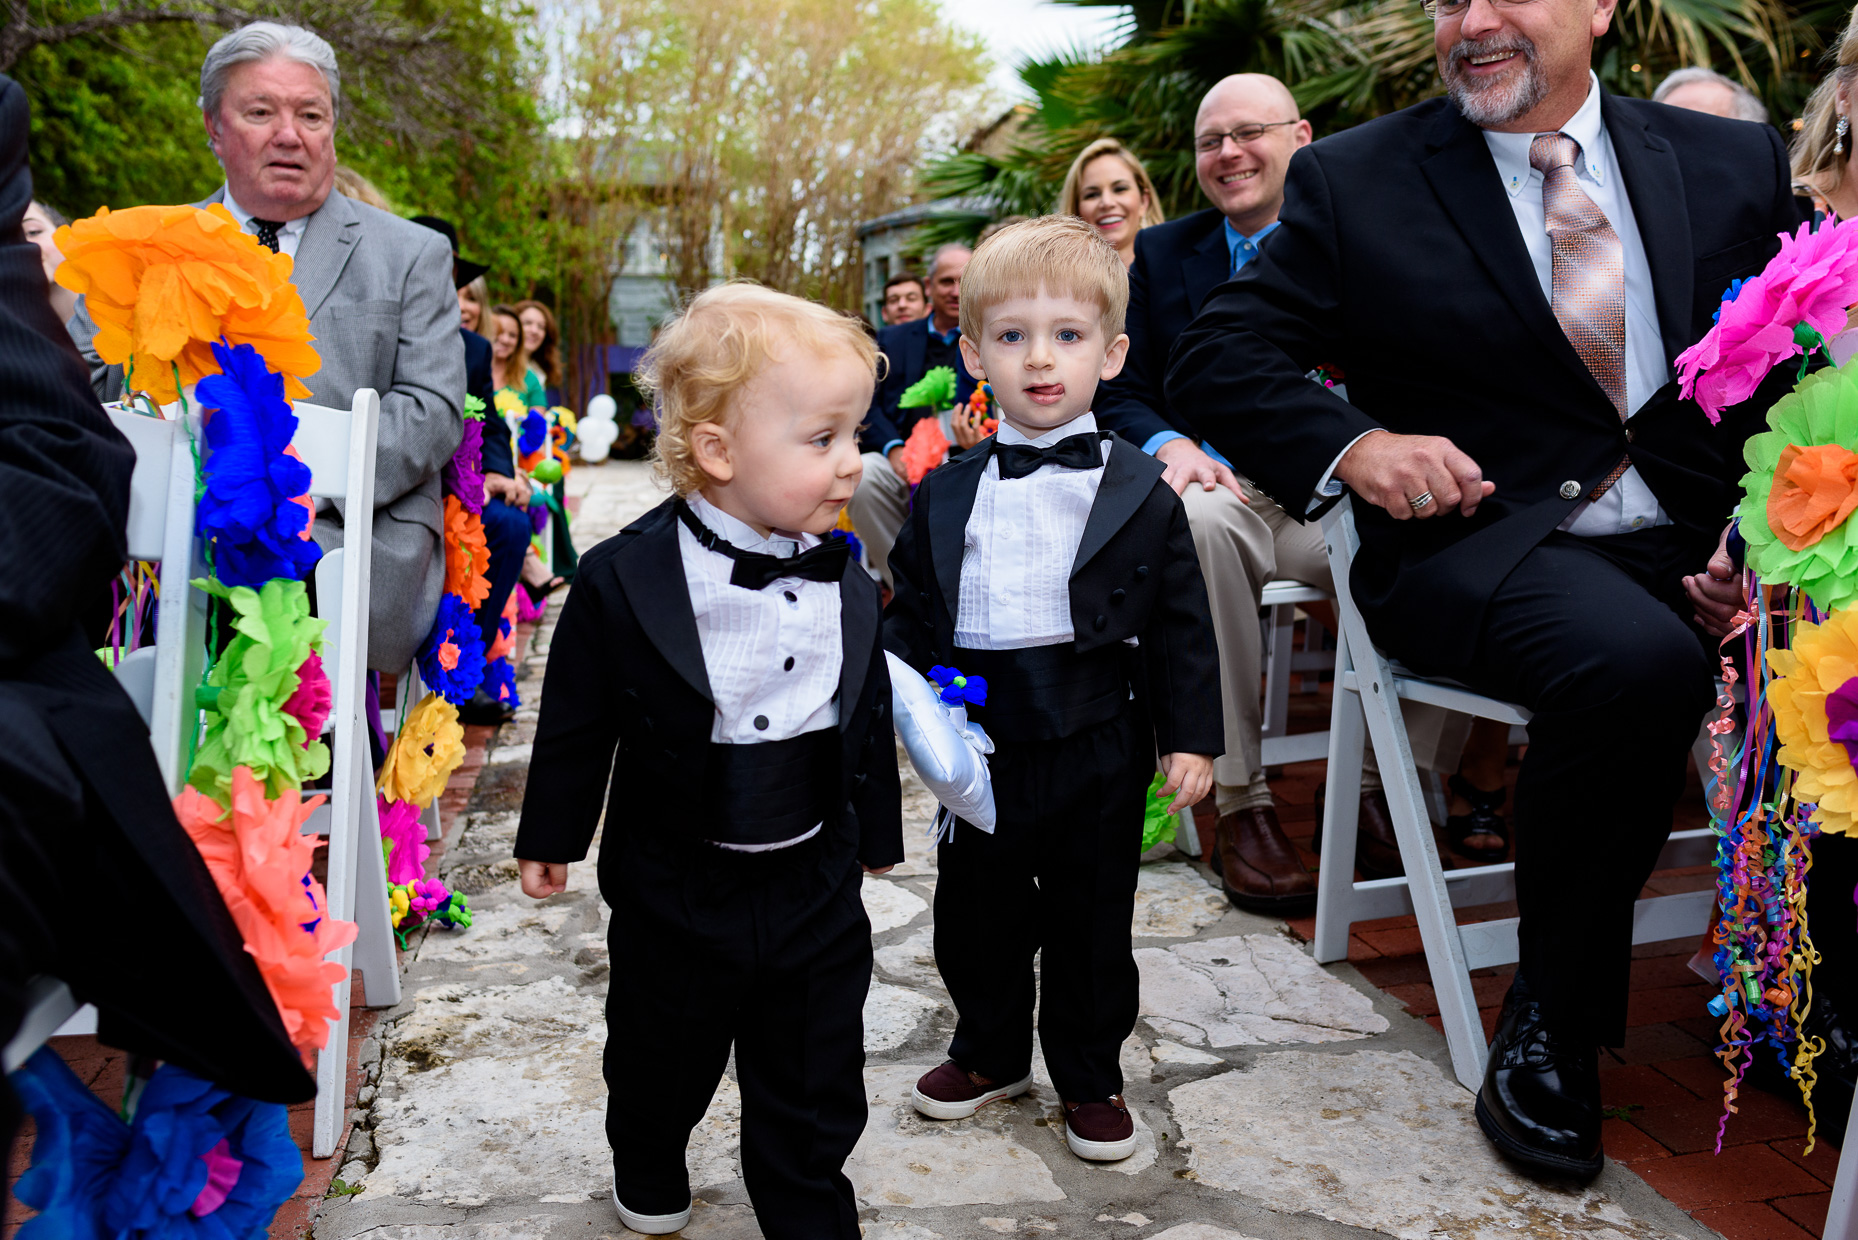 Austin-Wedding-Photographer-kids-ceremony-aisle-cute-san-antonio-zaza-gardens